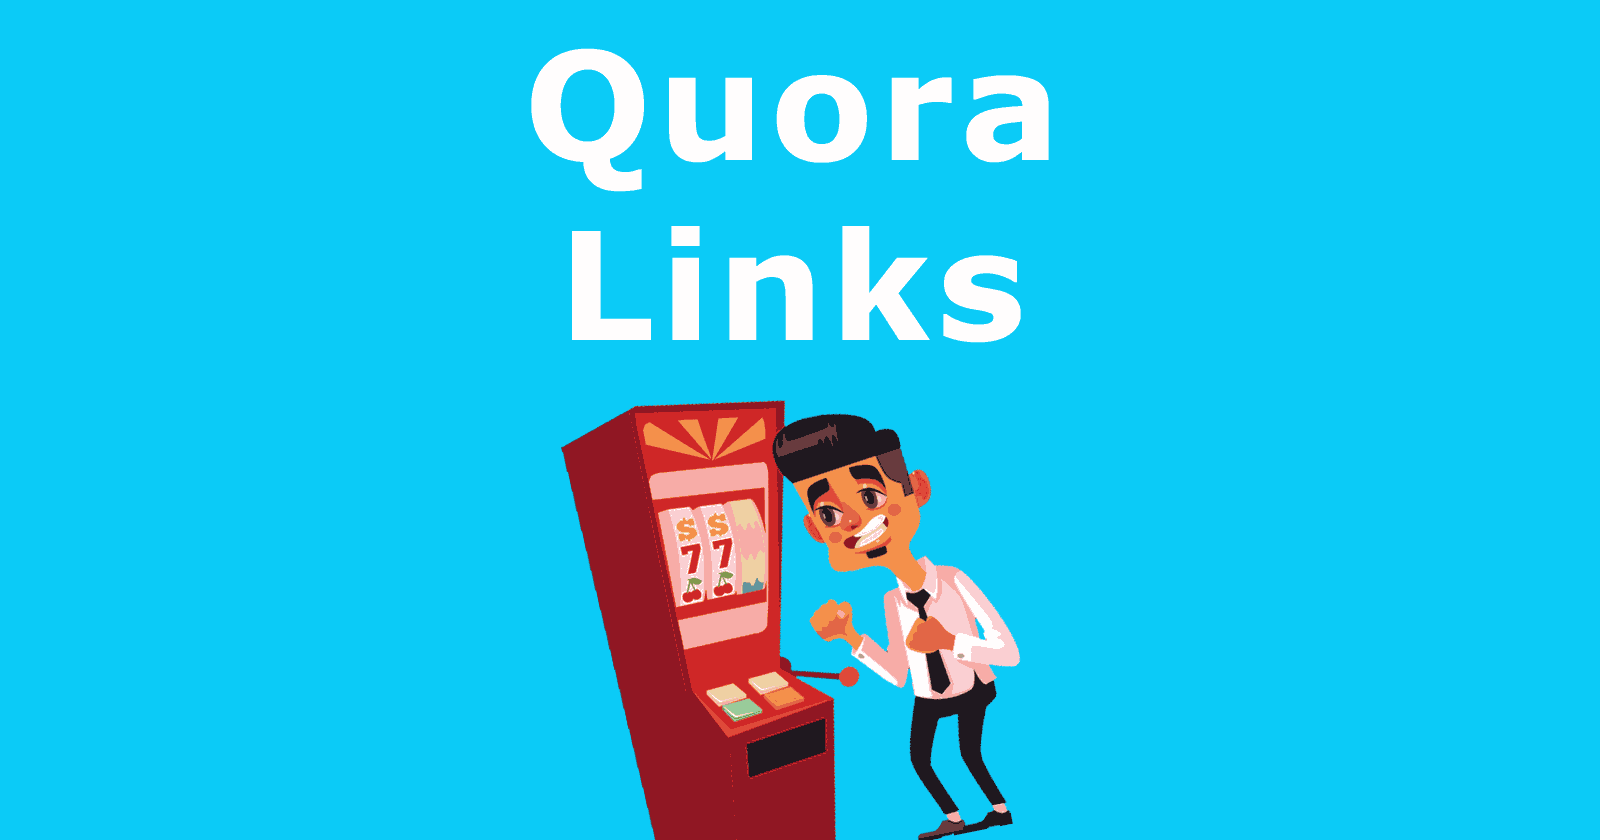 https://www.searchenginejournal.com/google-on-using-quora-for-links/366370/